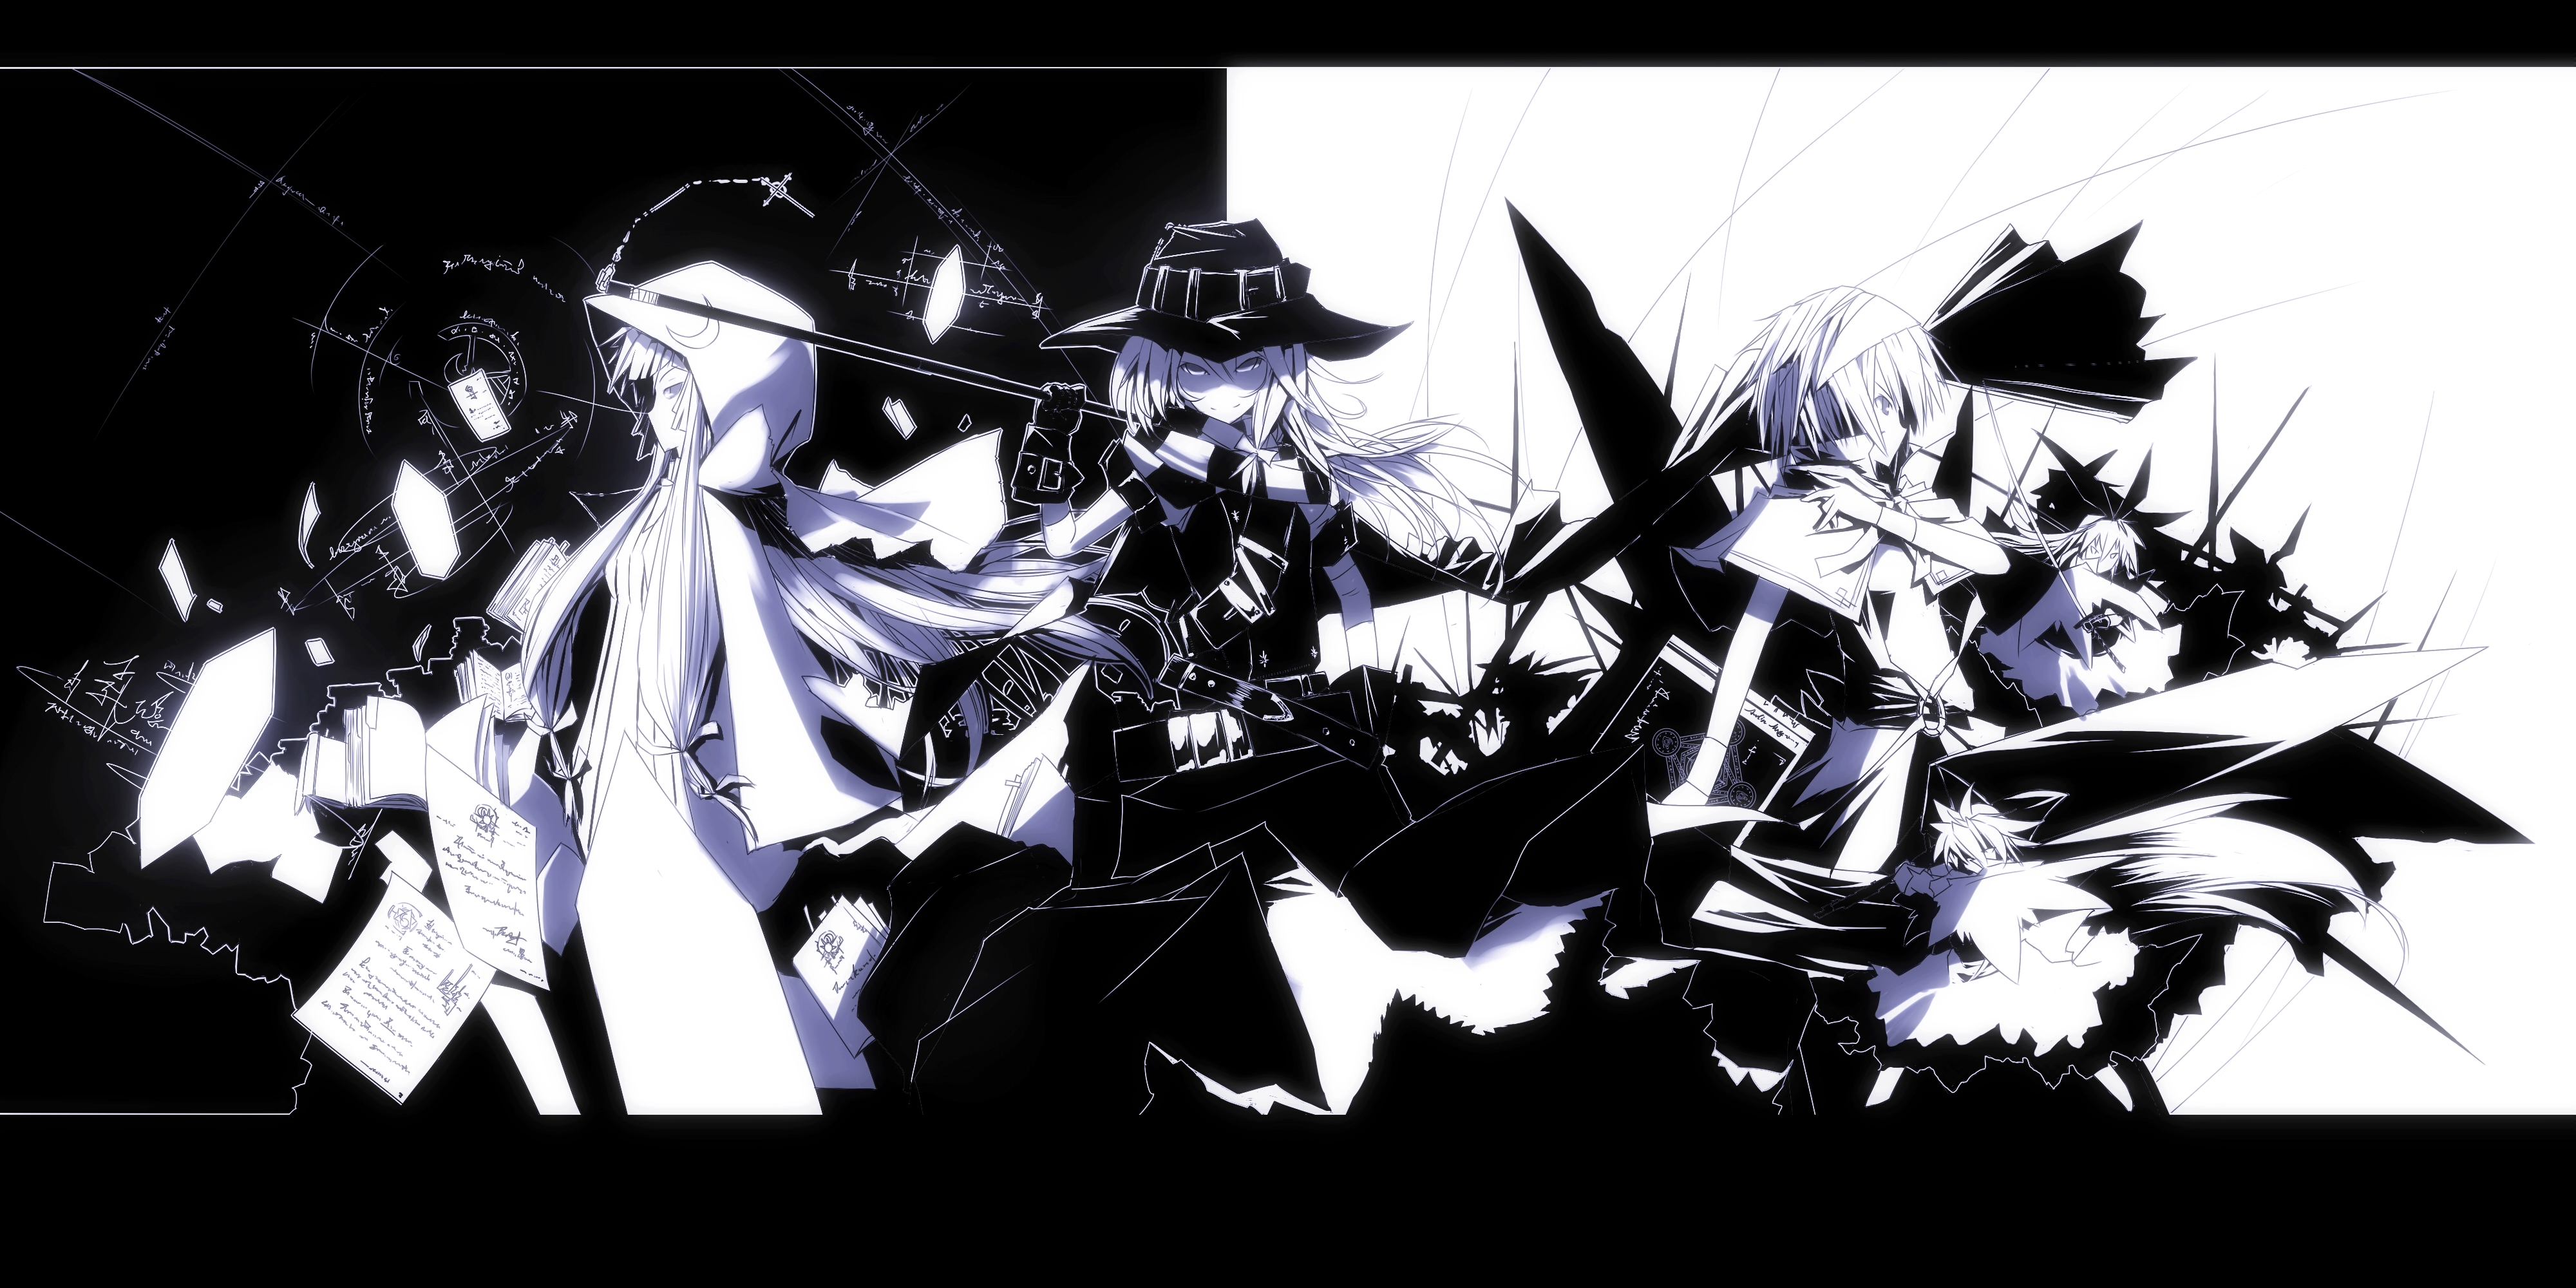 marisa monochrome hoodies anime badass HD Wallpaper of Anime Manga 4000x2000